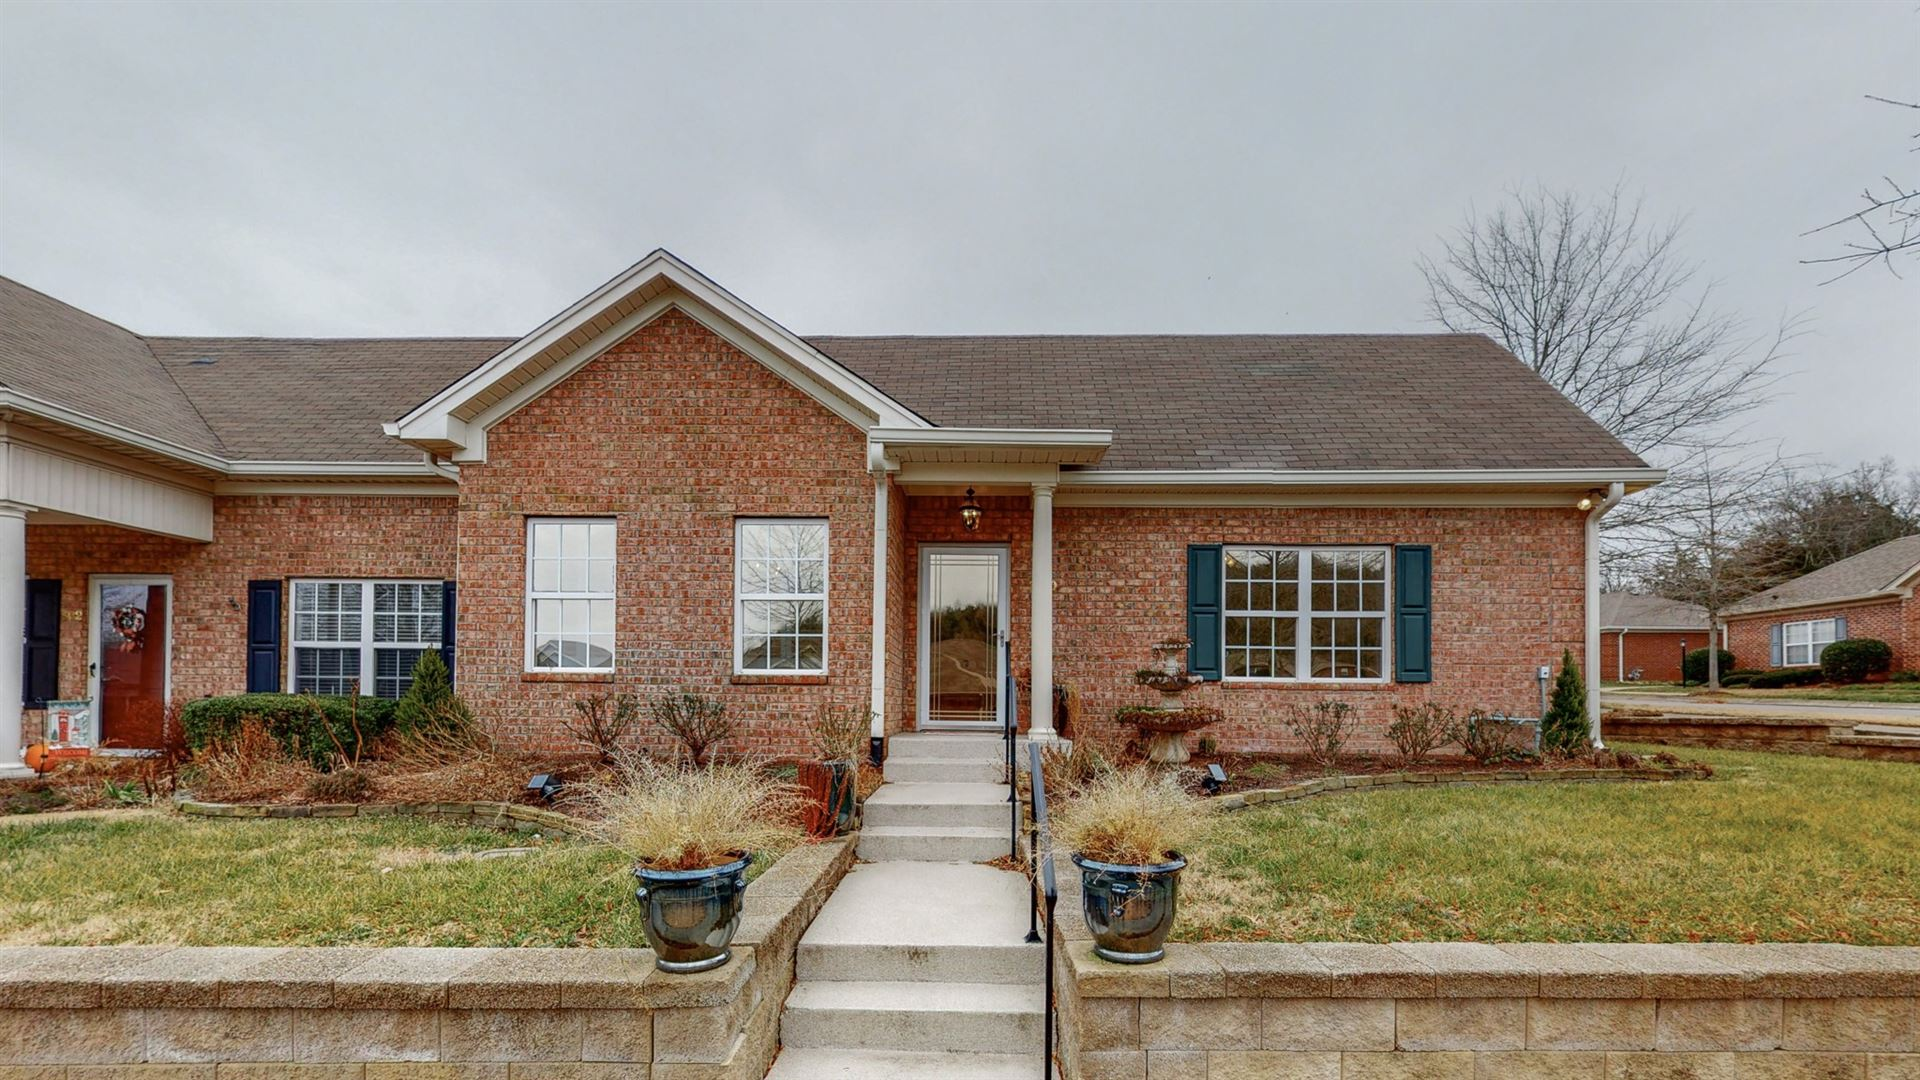 300 Connelly Ct, Franklin, TN 37064 - MLS#: 2219490